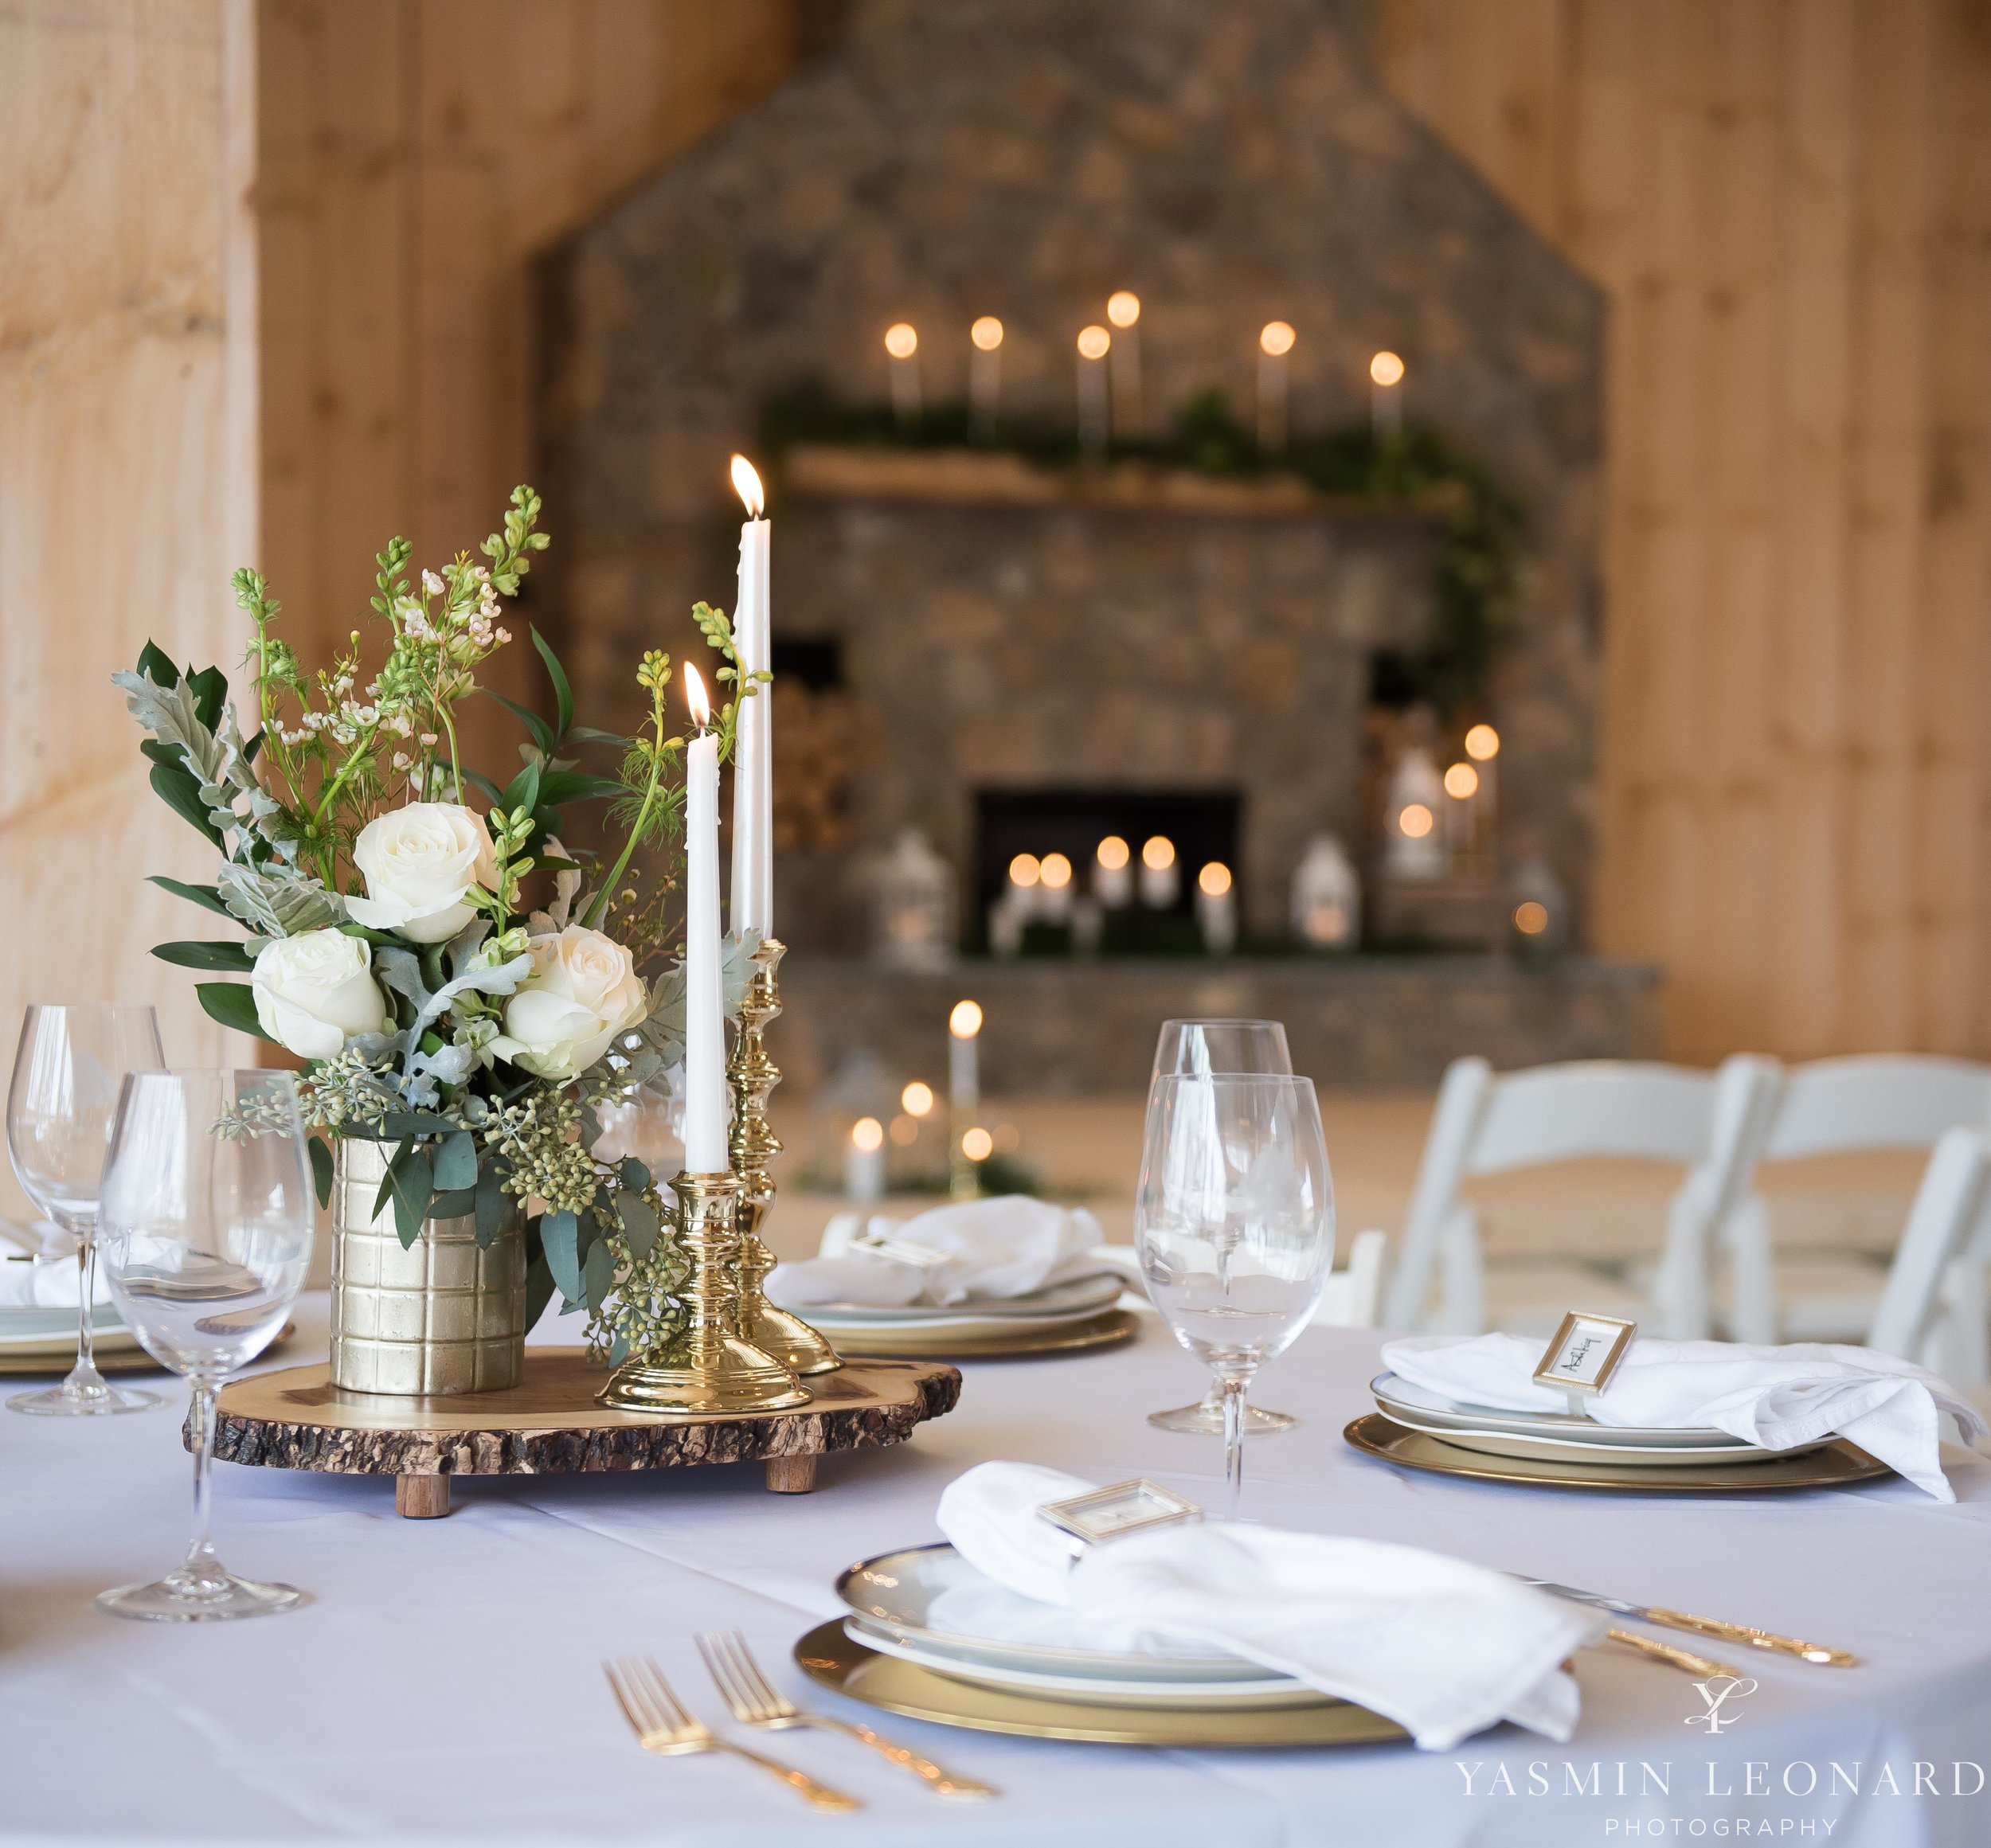 Old Homeplace Vineyard - Grits and Glitter - Dashing Dames Bridal Boutique - Just Priceless - Yasmin Leonard Photography - High Point Weddings - NC Weddings - NC Wedding Venues - High Point Jewelers - NC Wines - NC Vineyards - Cupcake Cuties-12.jpg